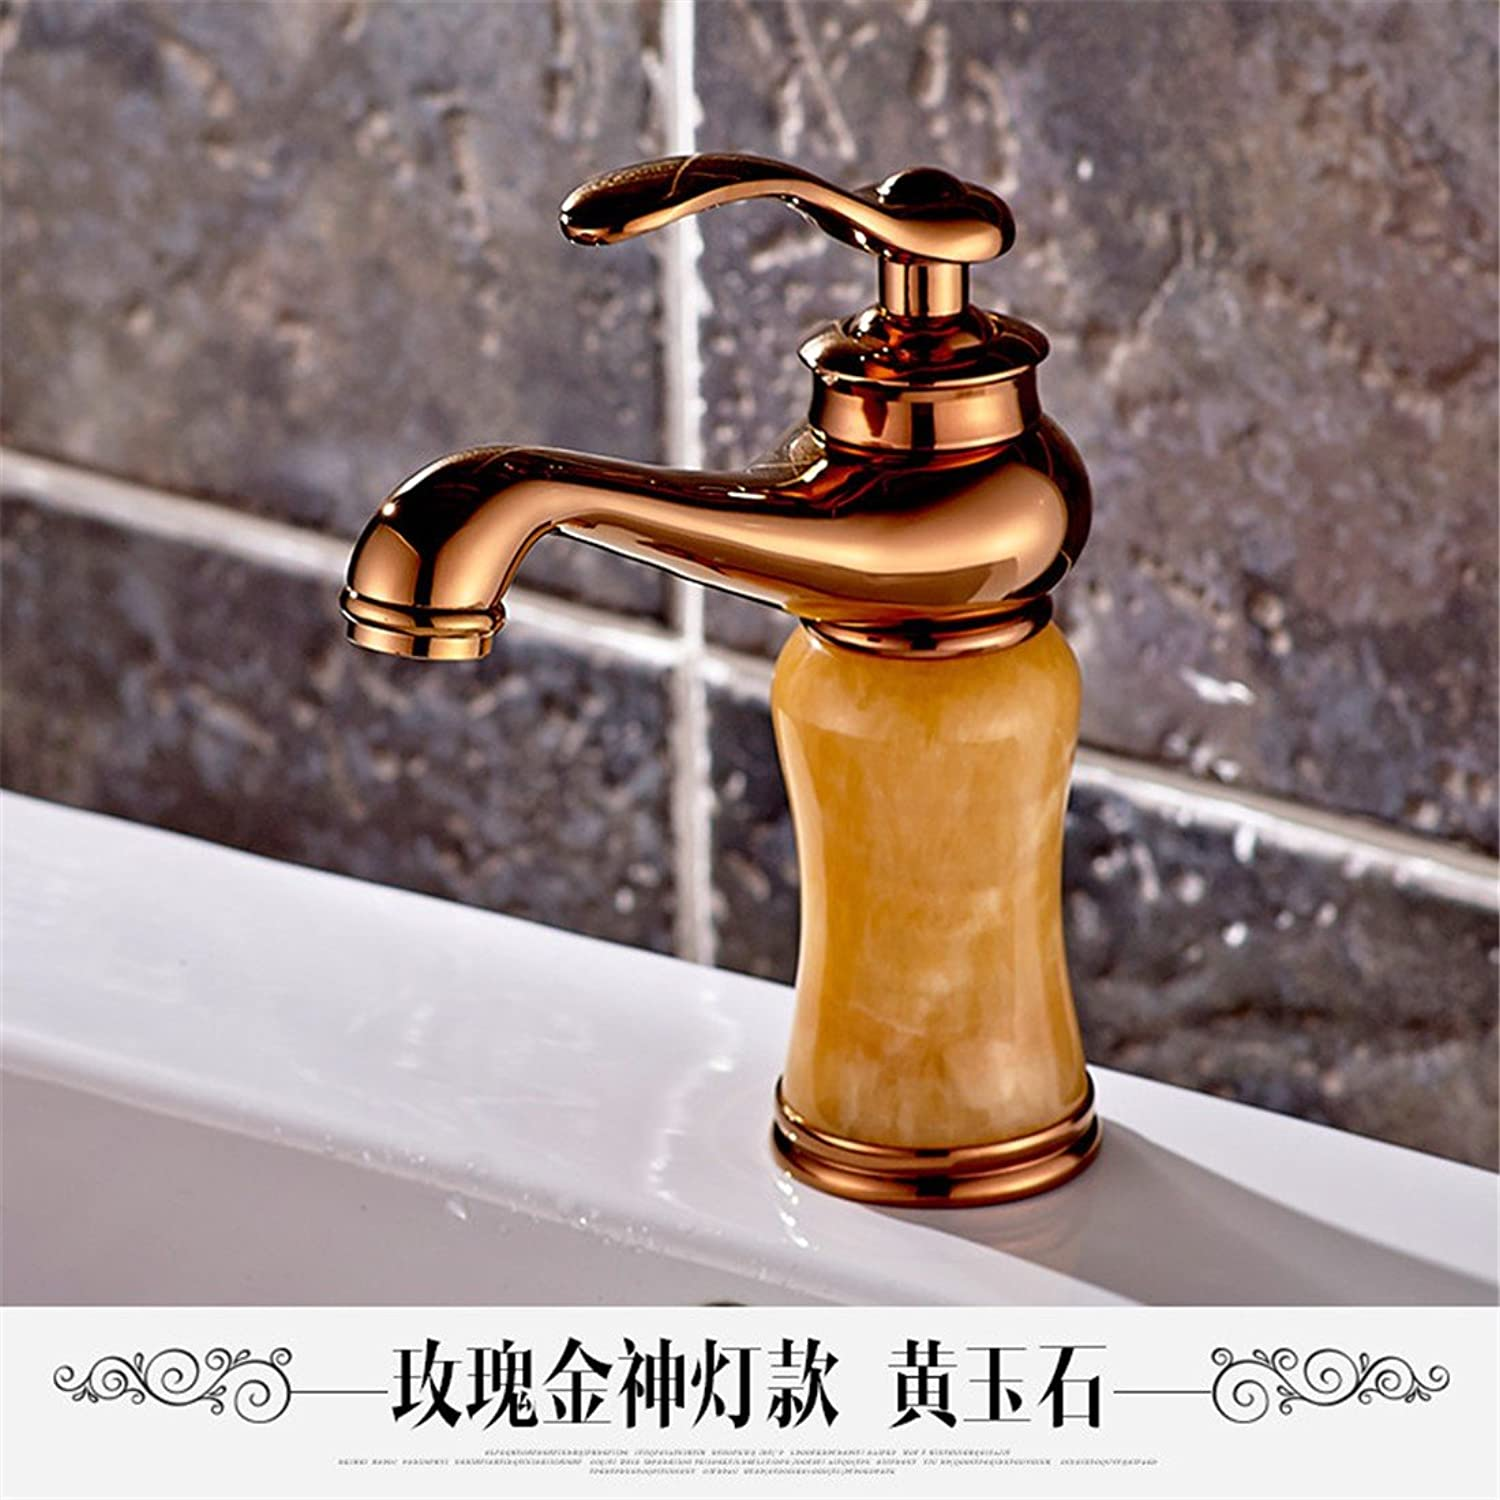 Hlluya Professional Sink Mixer Tap Kitchen Faucet The Jade faucet marble washbasins pink gold basin full copper golden basin of hot and cold taps, God light pink gold Topaz